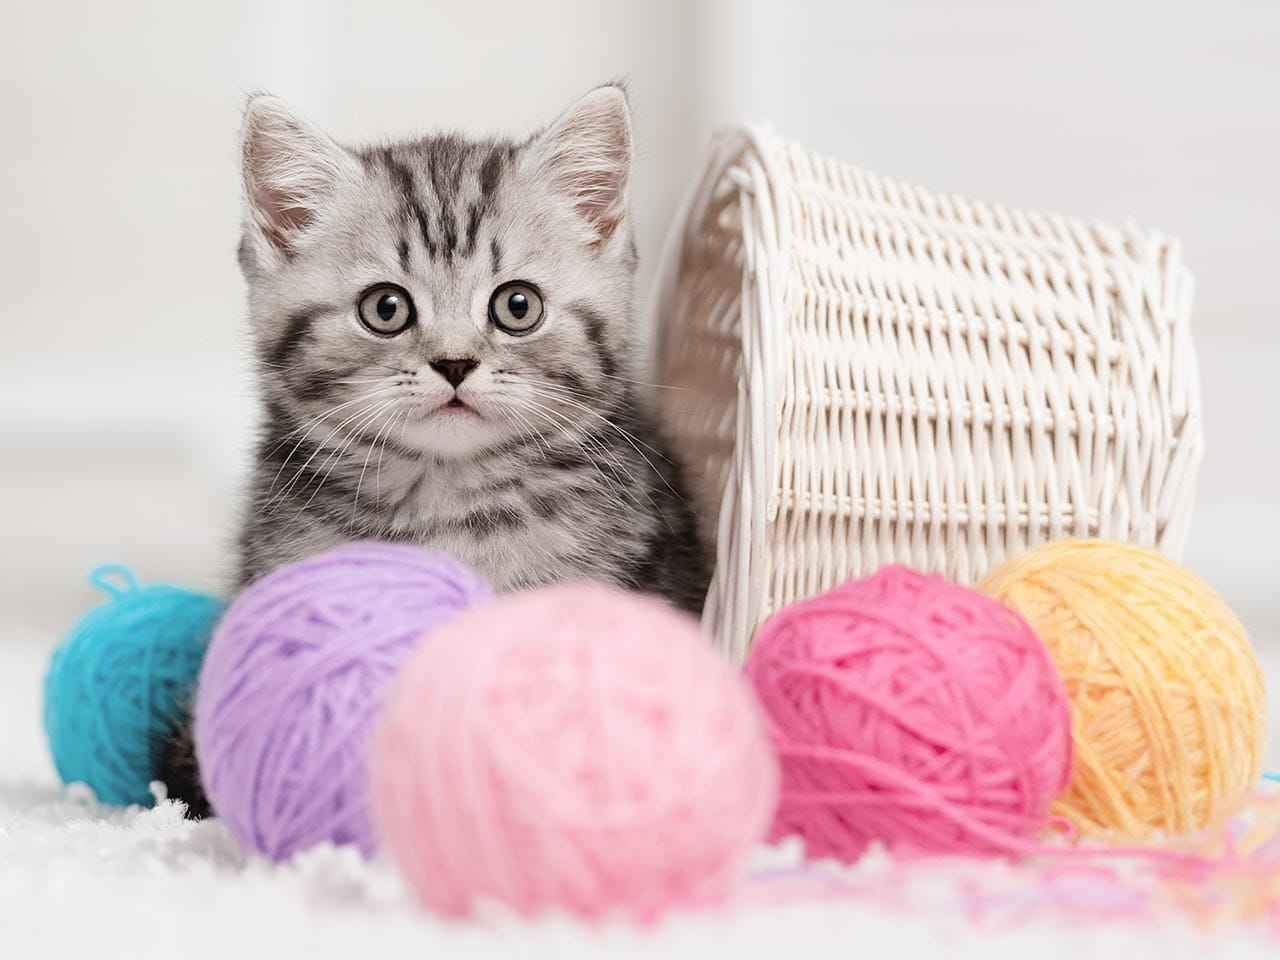 Kitten surrounded by balls of wool